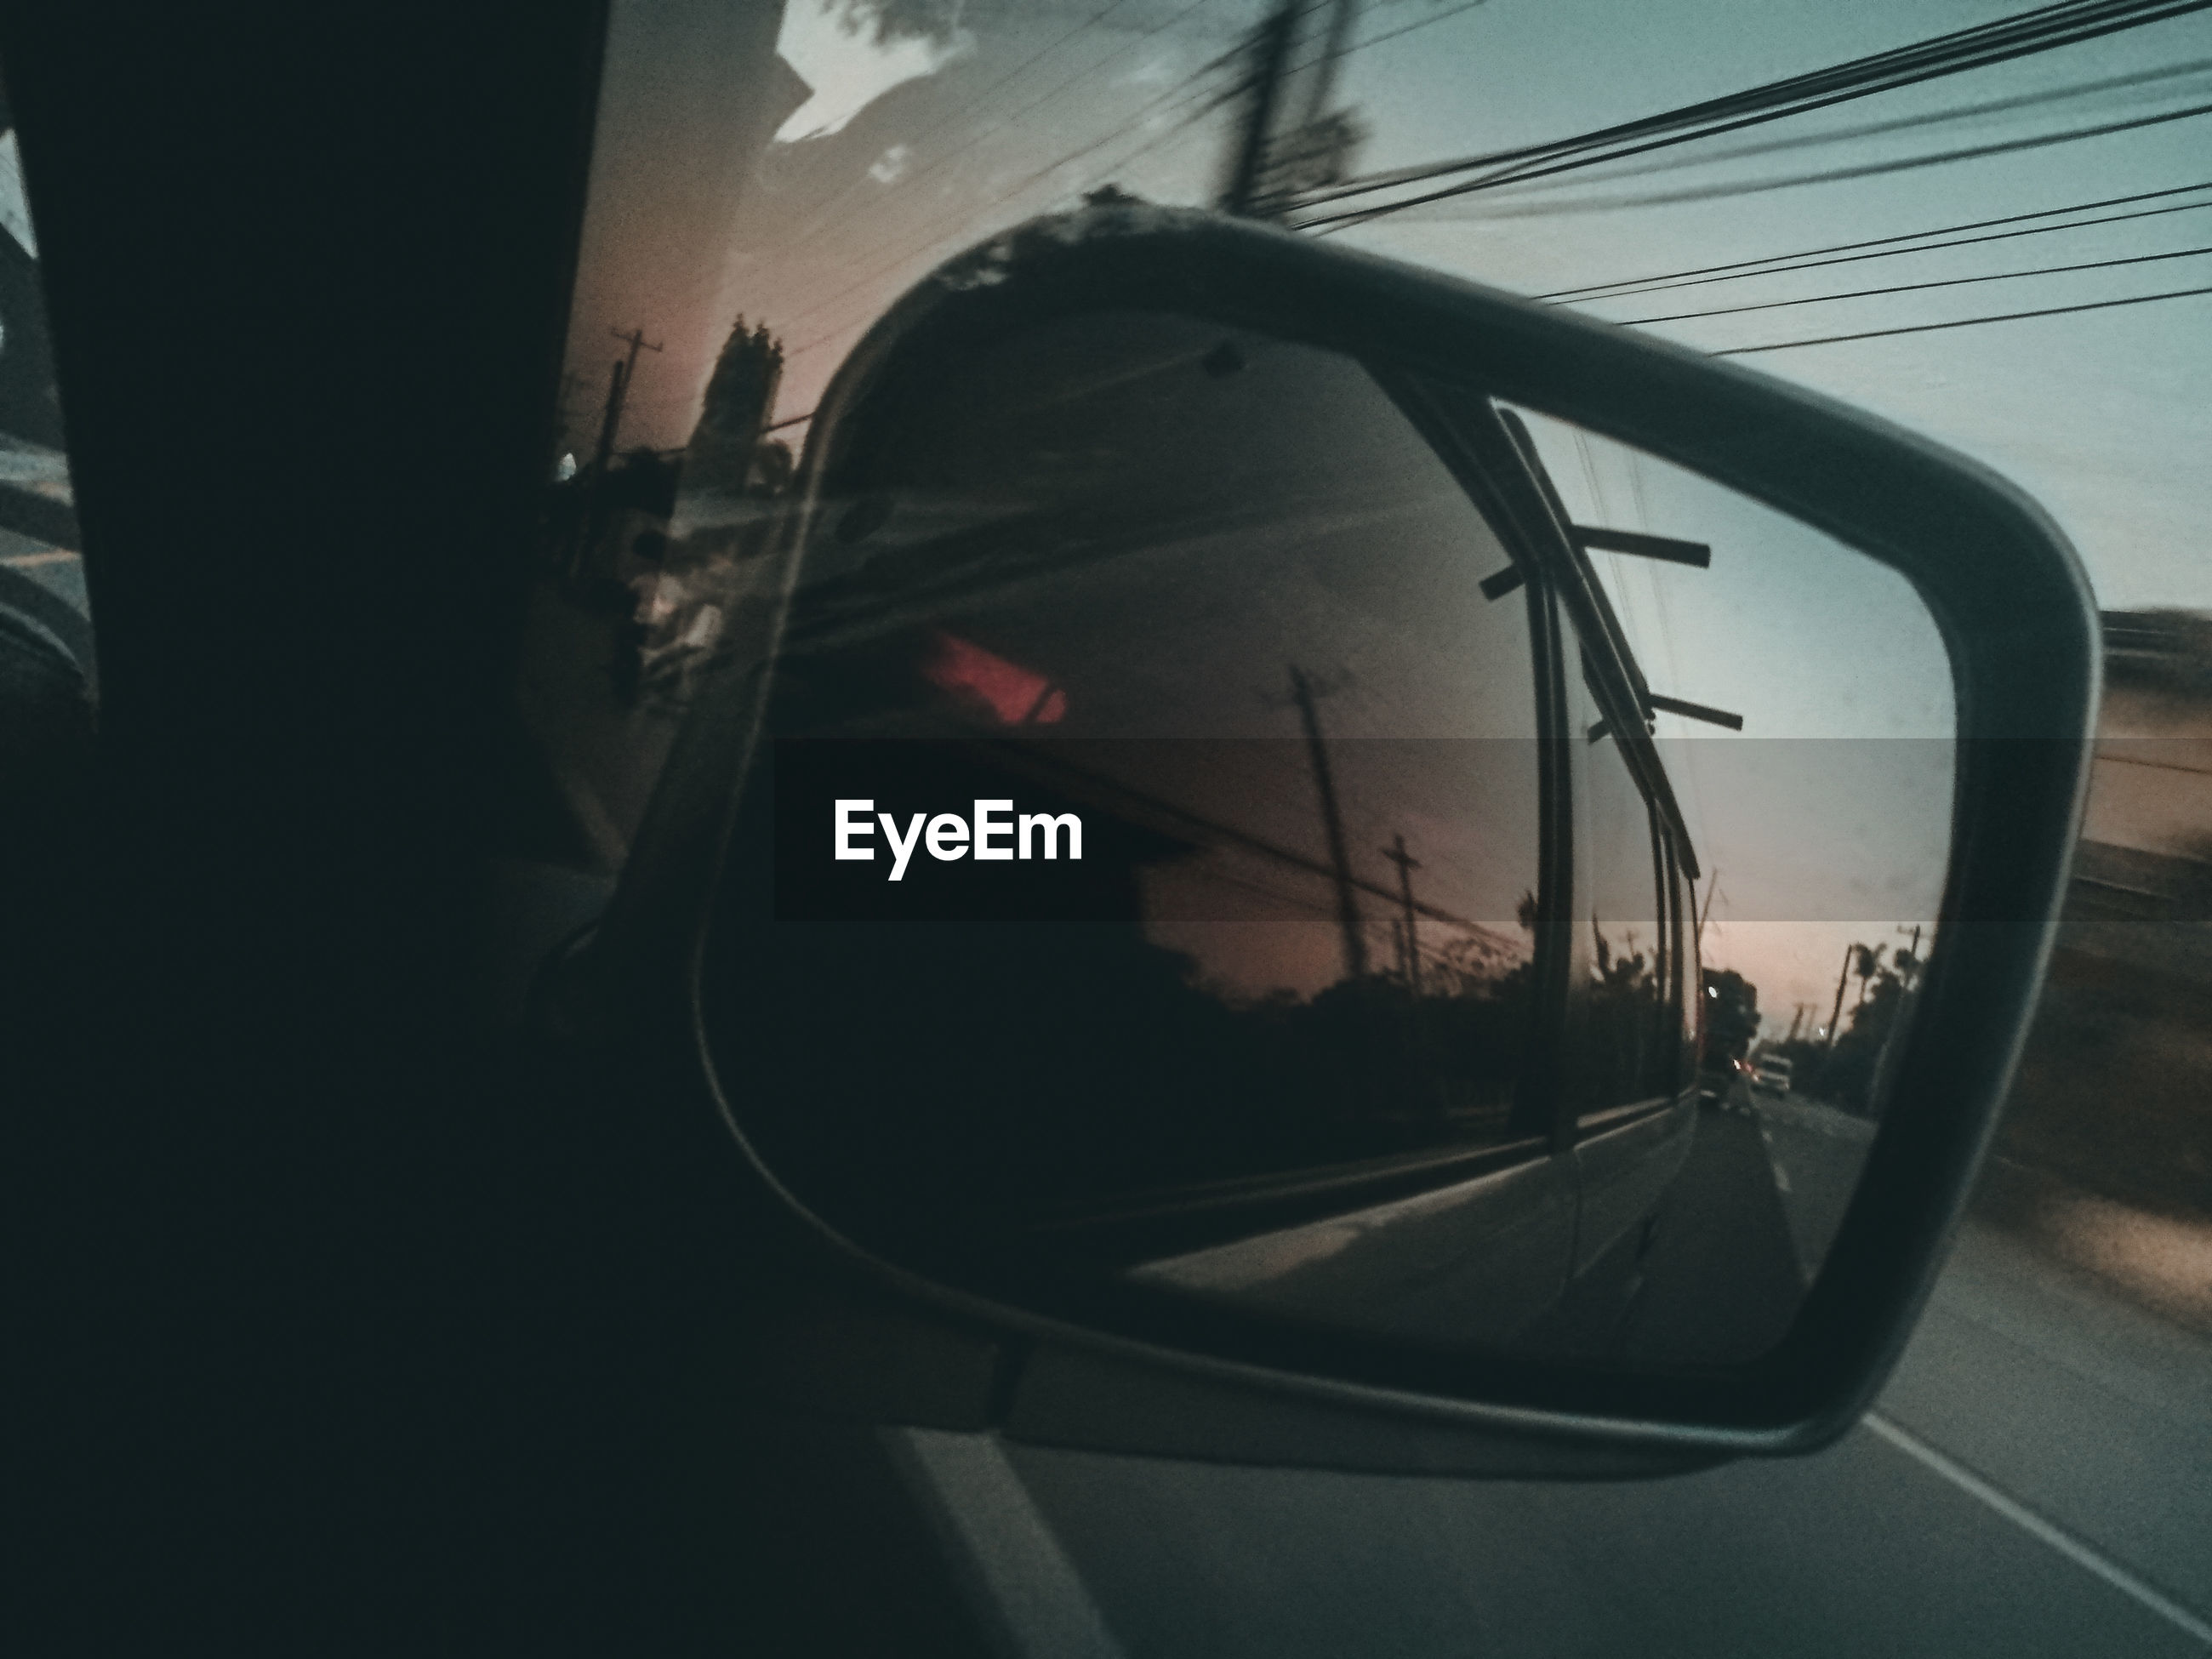 transportation, mode of transportation, land vehicle, glass - material, car, motor vehicle, reflection, side-view mirror, vehicle interior, travel, transparent, road, sky, window, nature, outdoors, journey, close-up, on the move, sunset, no people, vehicle mirror, road trip